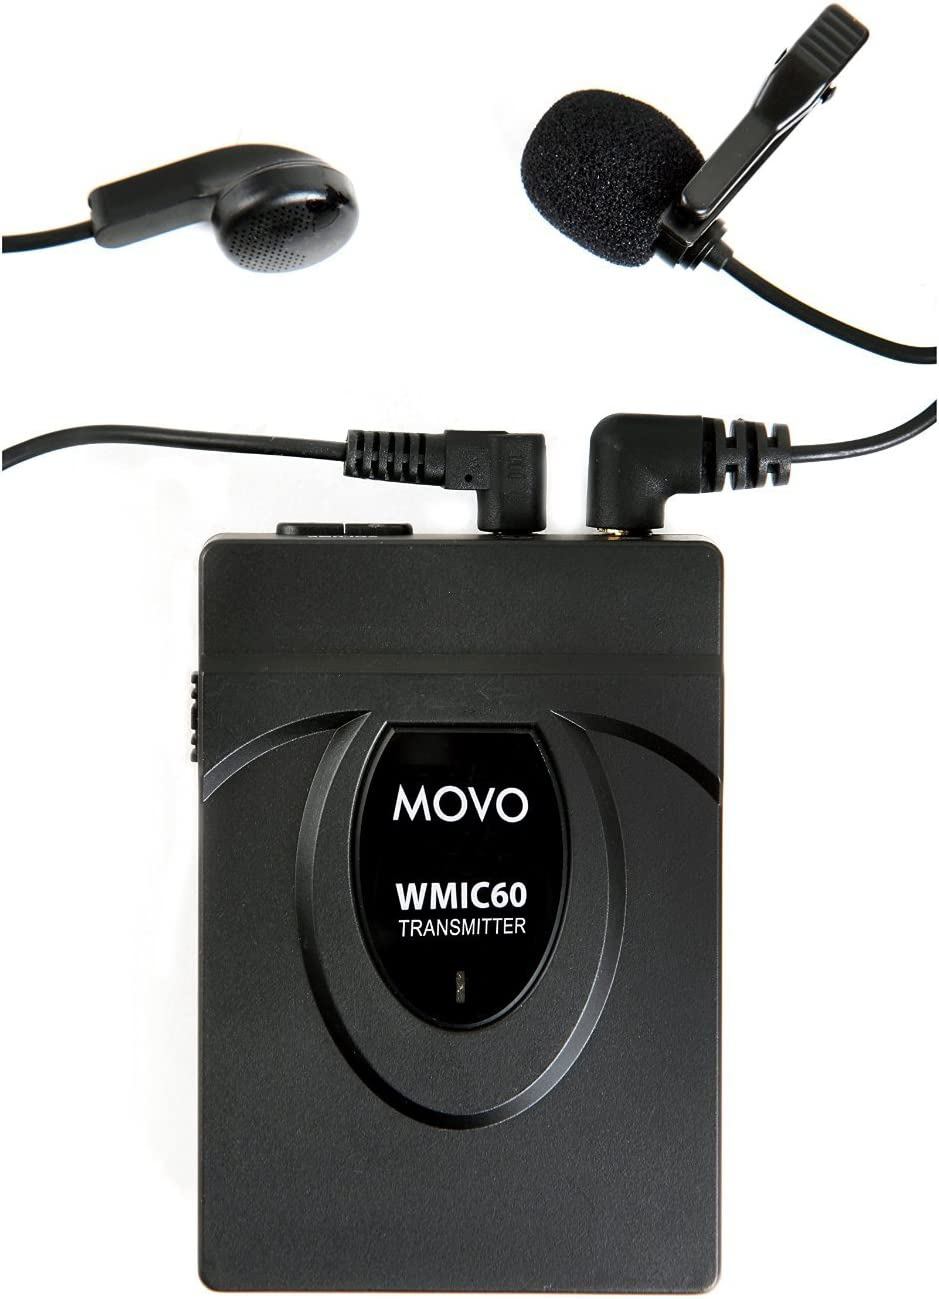 Includes Transmitter with Belt Clip, Receiver with Camera Shoe, Lapel Mic and 2 Earphones Movo WMIC60 2.4GHz Wireless Lavalier and Handheld Microphone System with Integrated 164-foot Range Antenna